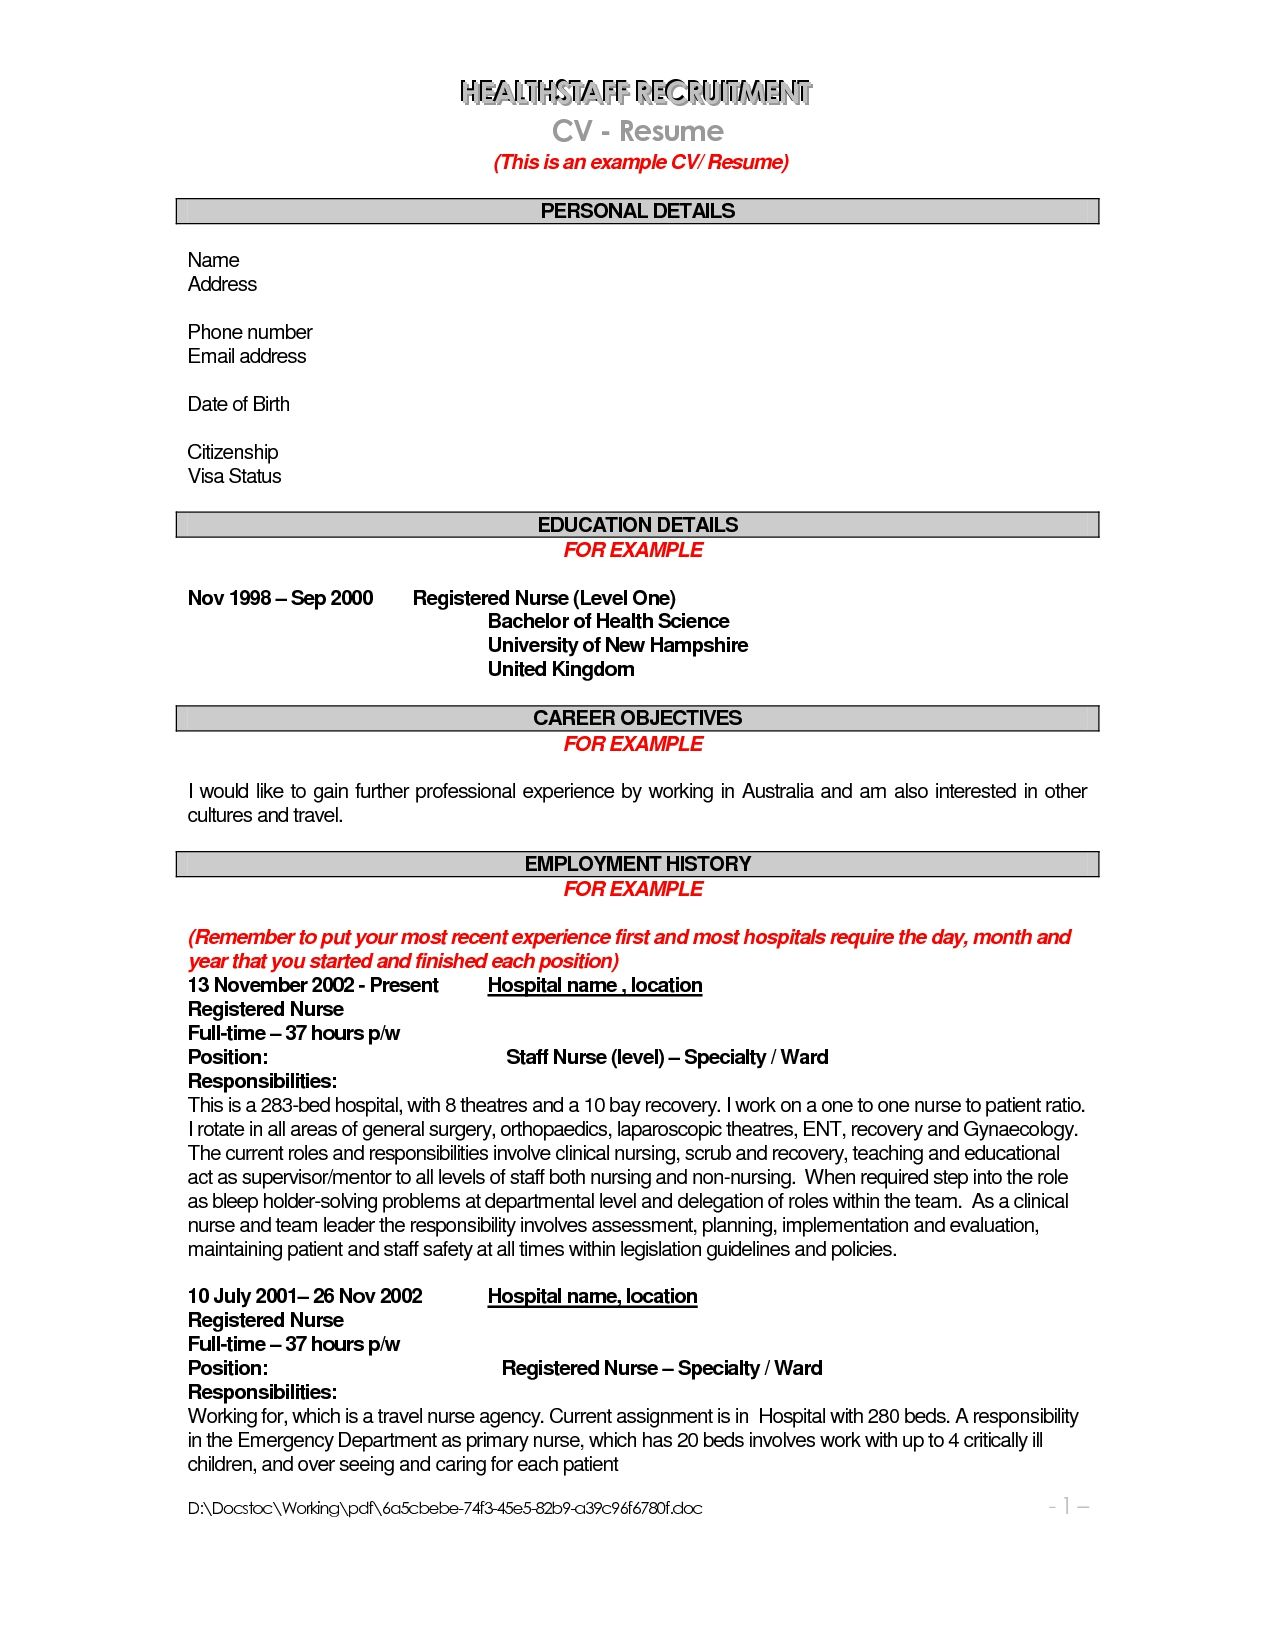 Samples Of Objectives For A Resume Inspiration Resume Job Description Cover Letter Template Sample Resumes .